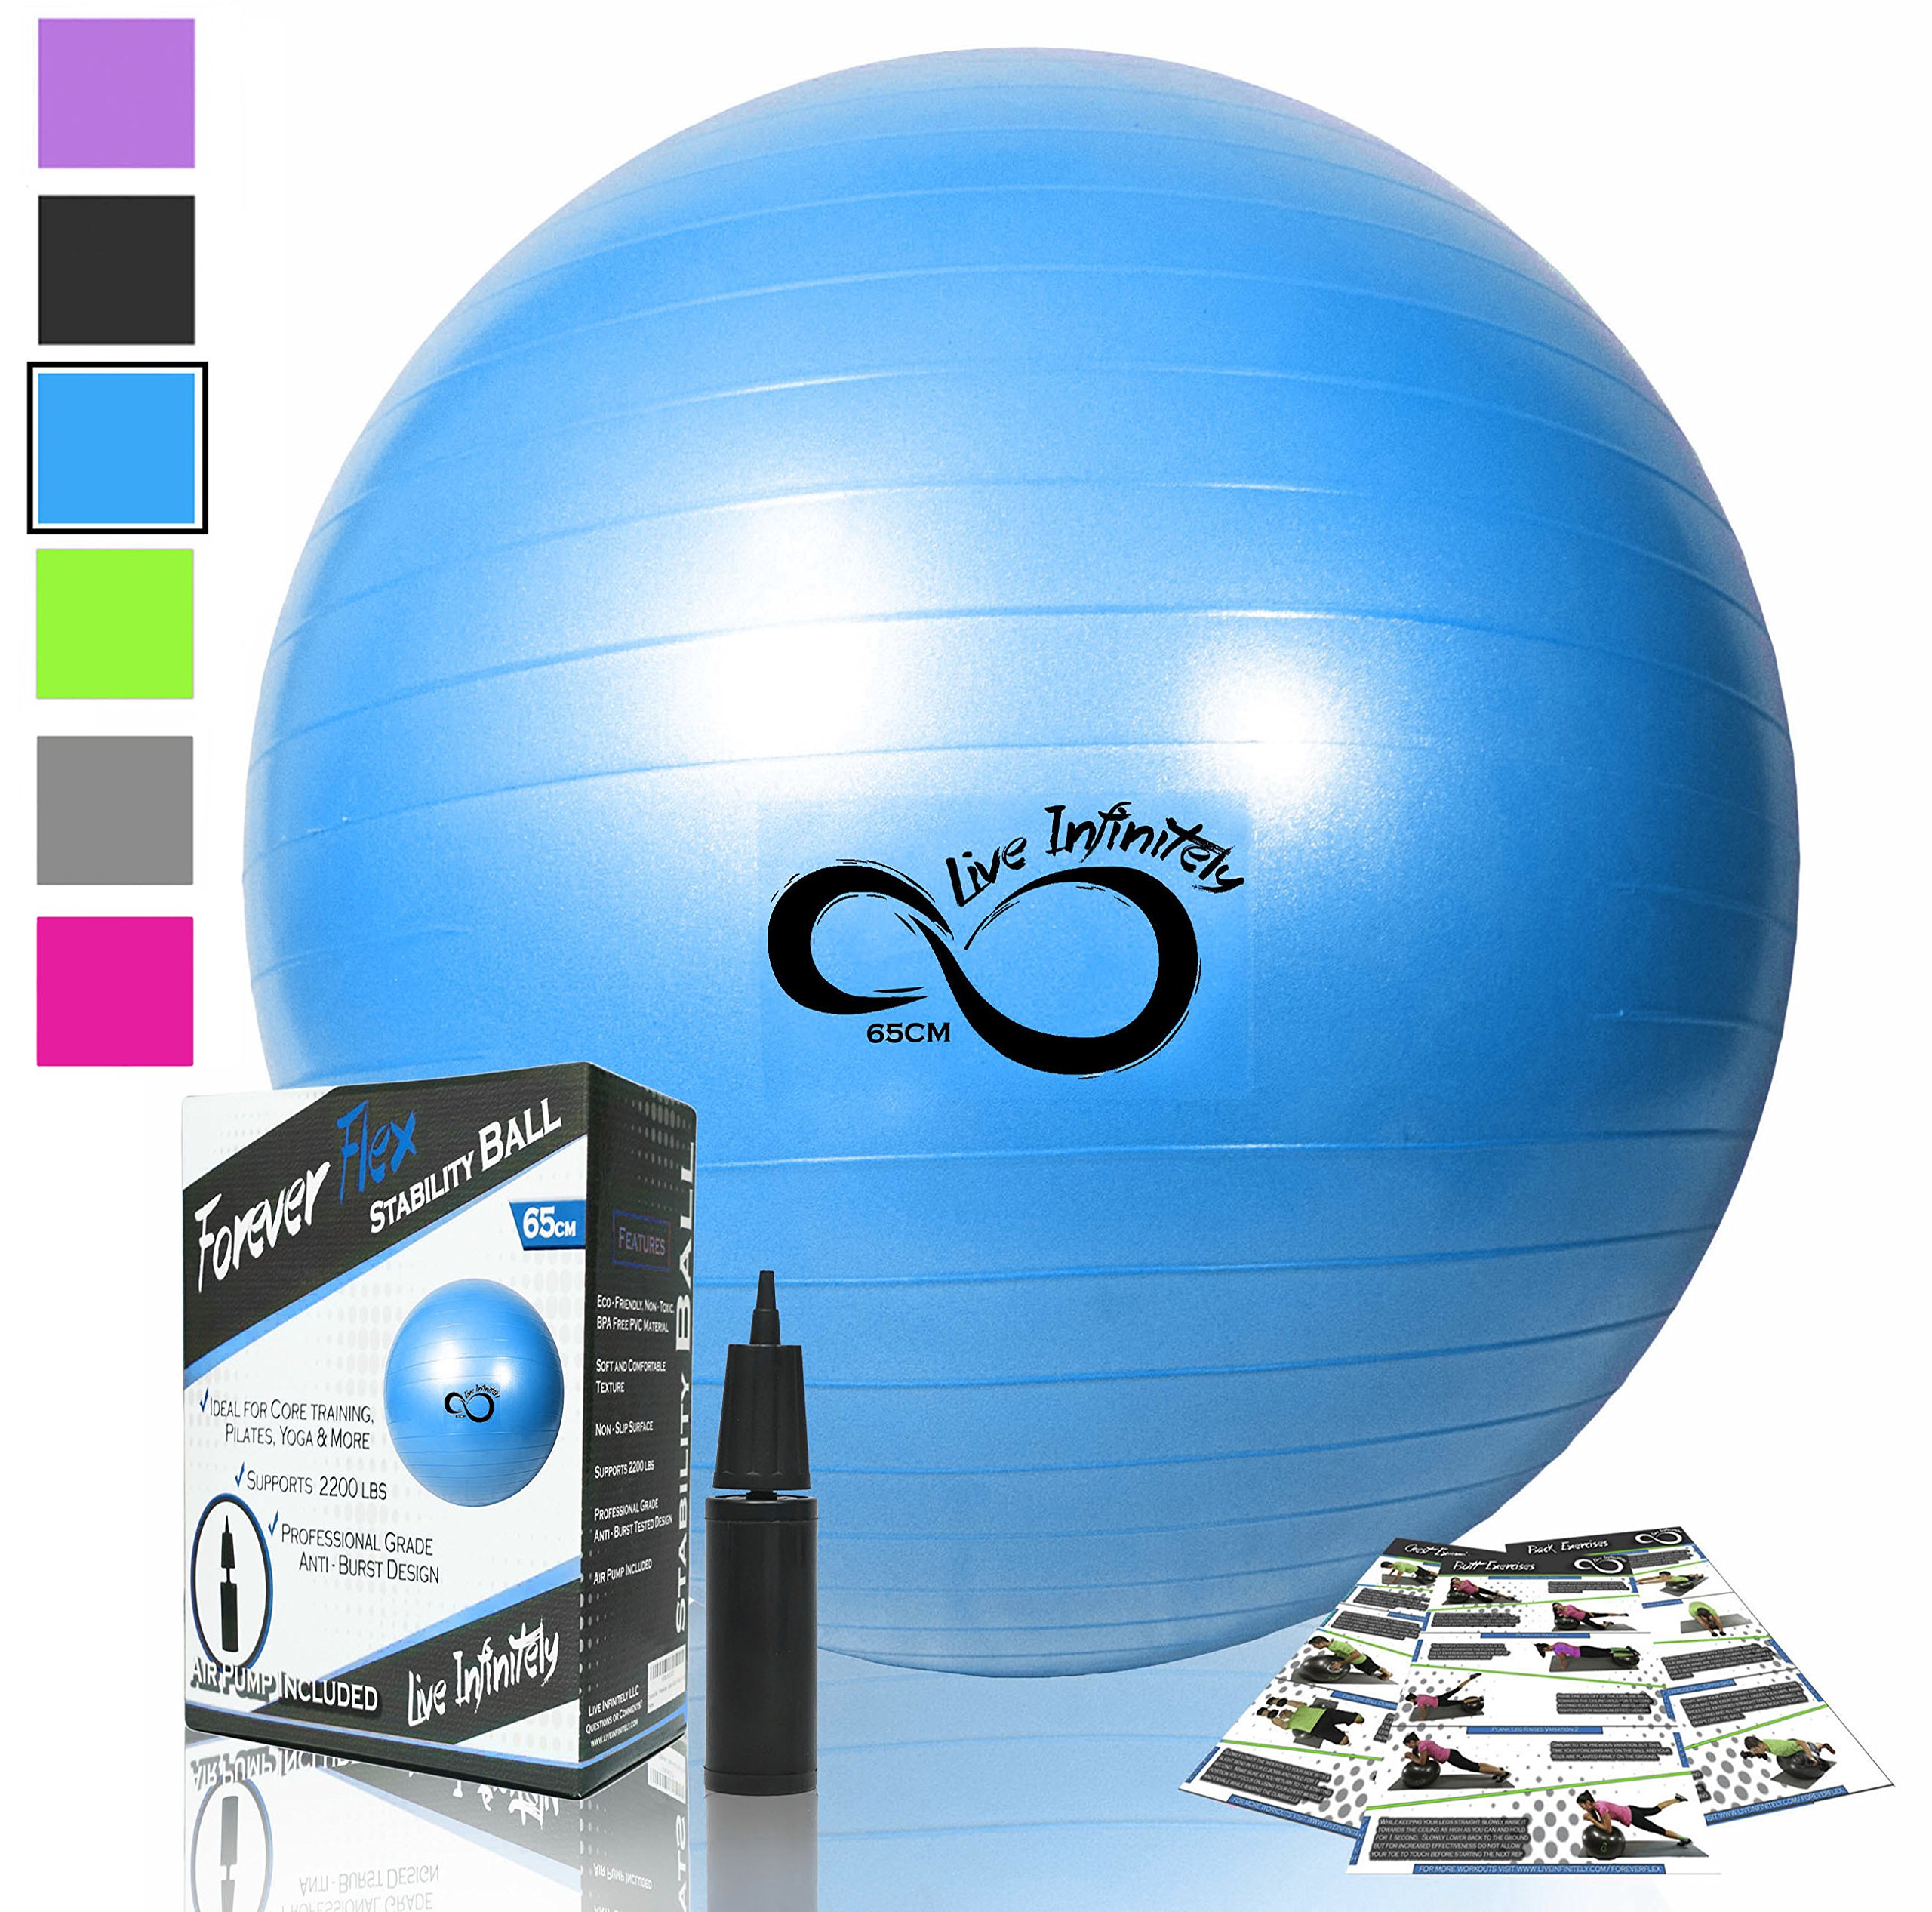 Live Infinitely Exercise Ball (55cm-95cm) Extra Thick Professional Grade Balance & Stability Ball- Anti Burst Tested Supports 2200lbs- Includes Hand Pump & Workout Guide Access Blue 55cm by Live Infinitely (Image #1)